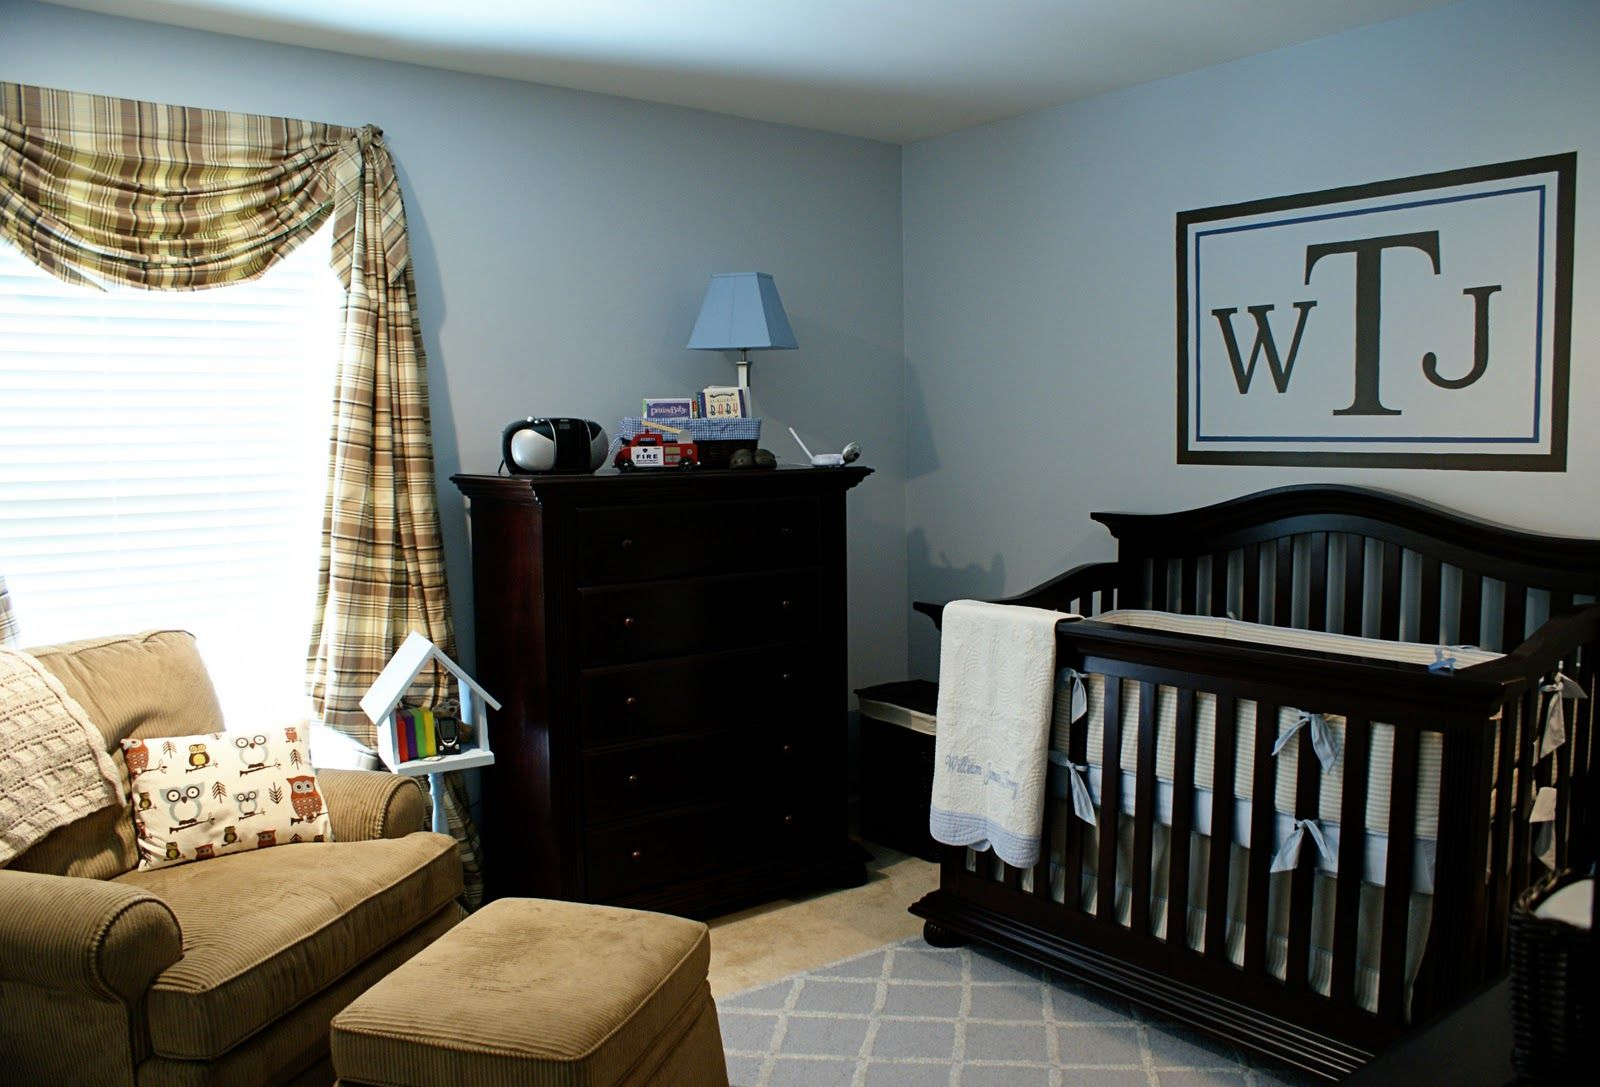 Room nursery on pinterest babies nursery nurseries and for Nursery room ideas for small rooms